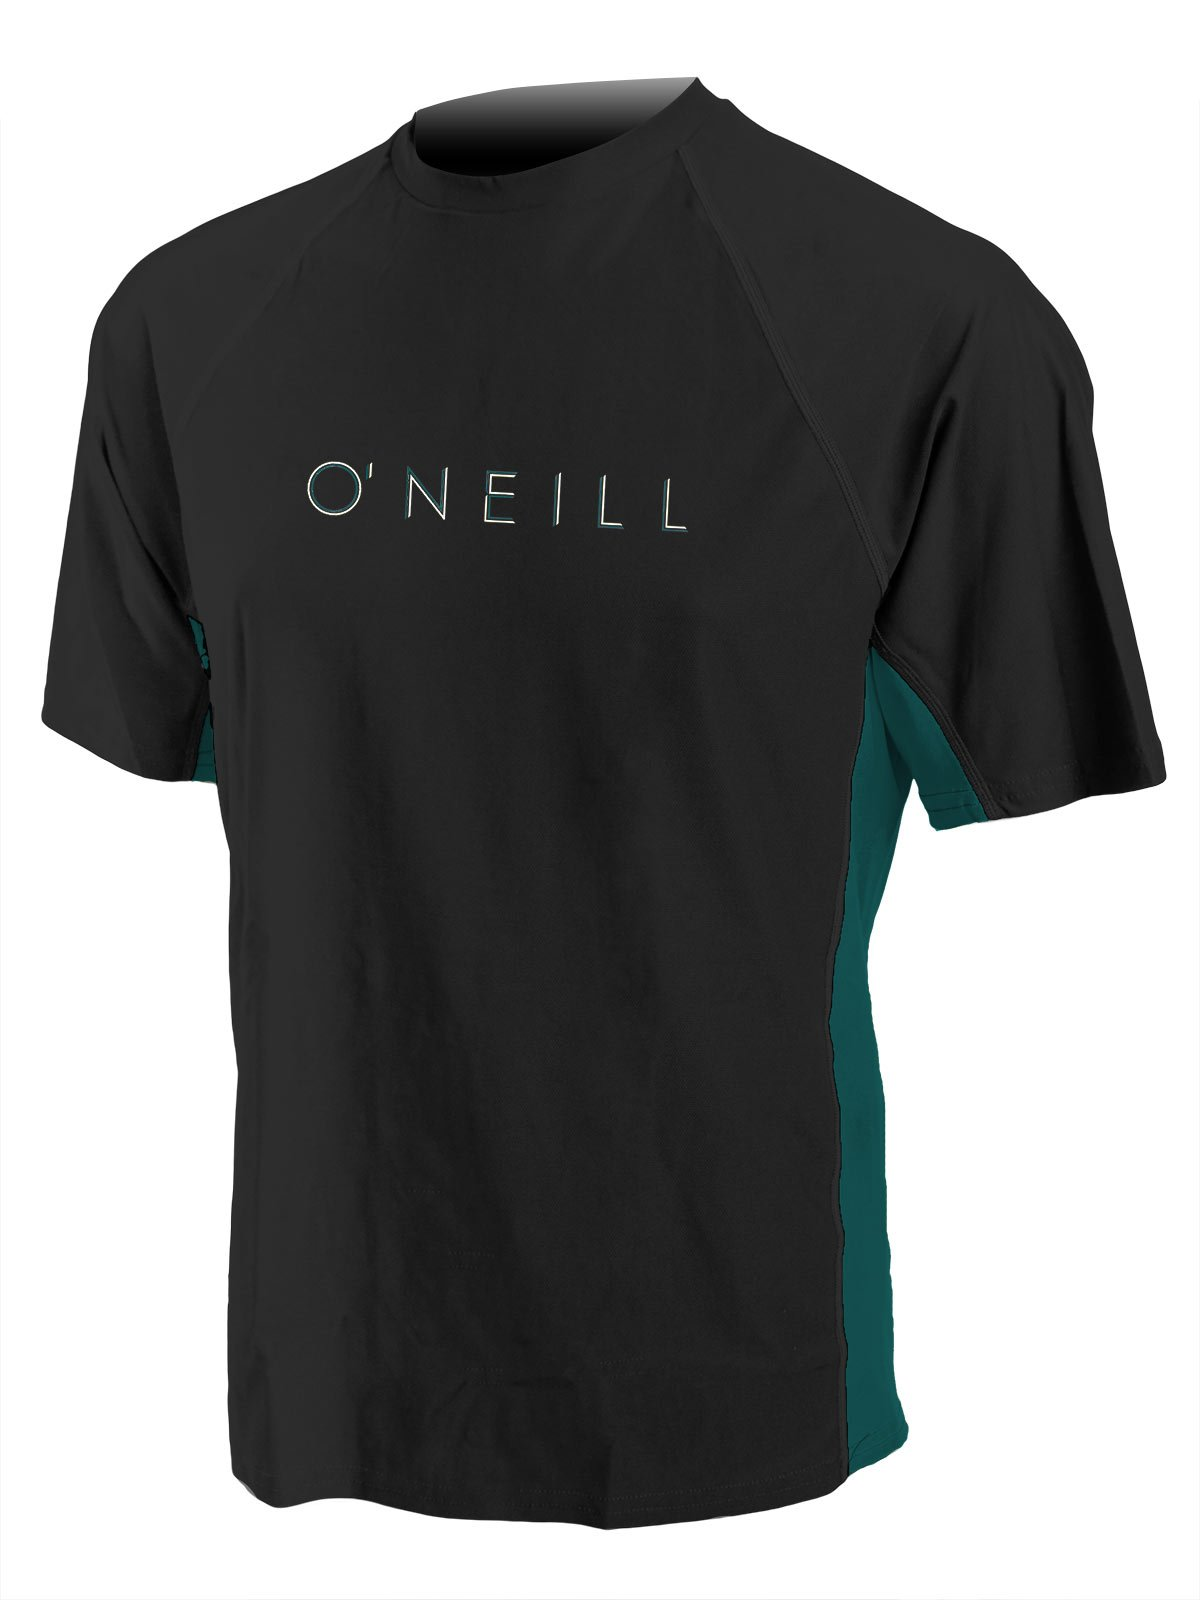 O'Neill Men's 24/7 Sun tee 3XL-Tall Black/deep Teal (4452C) by O'NEILL